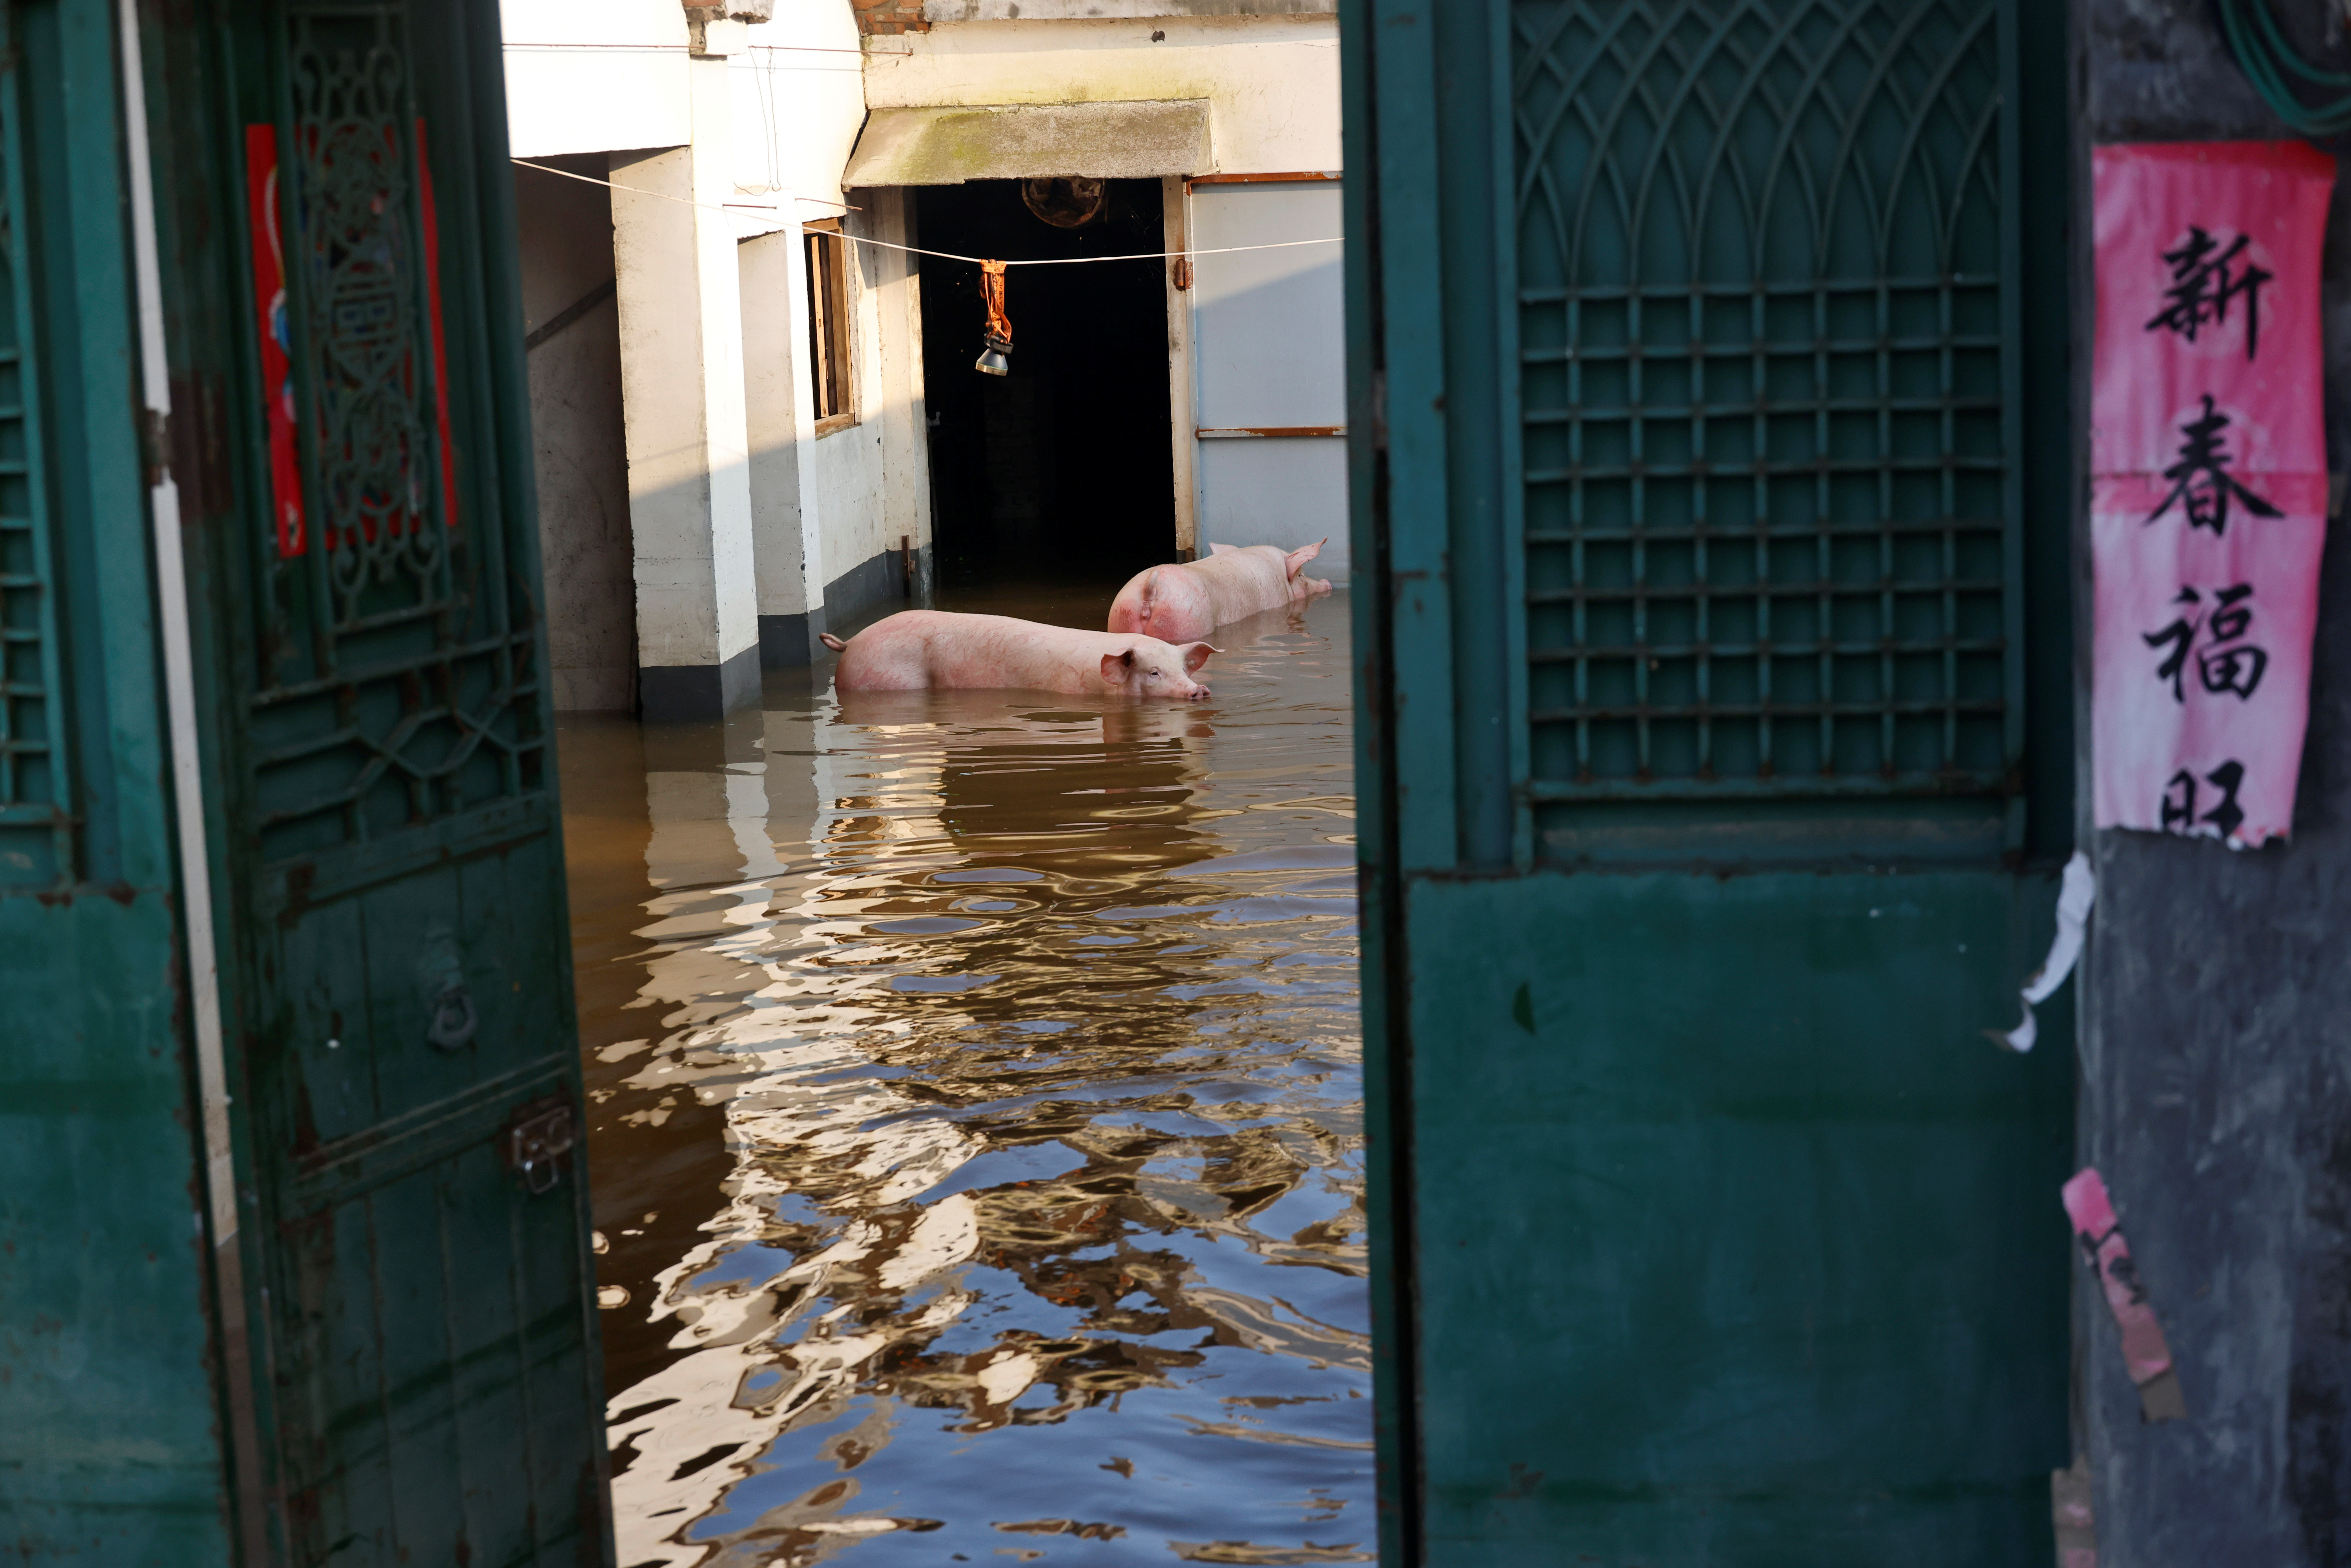 Pigs are seen amid floodwaters after heavy rainfall in Wangfan village of Xinxiang, Henan province, China July 25, 2021. Picture taken July 25, 2021. REUTERS/Aly Song